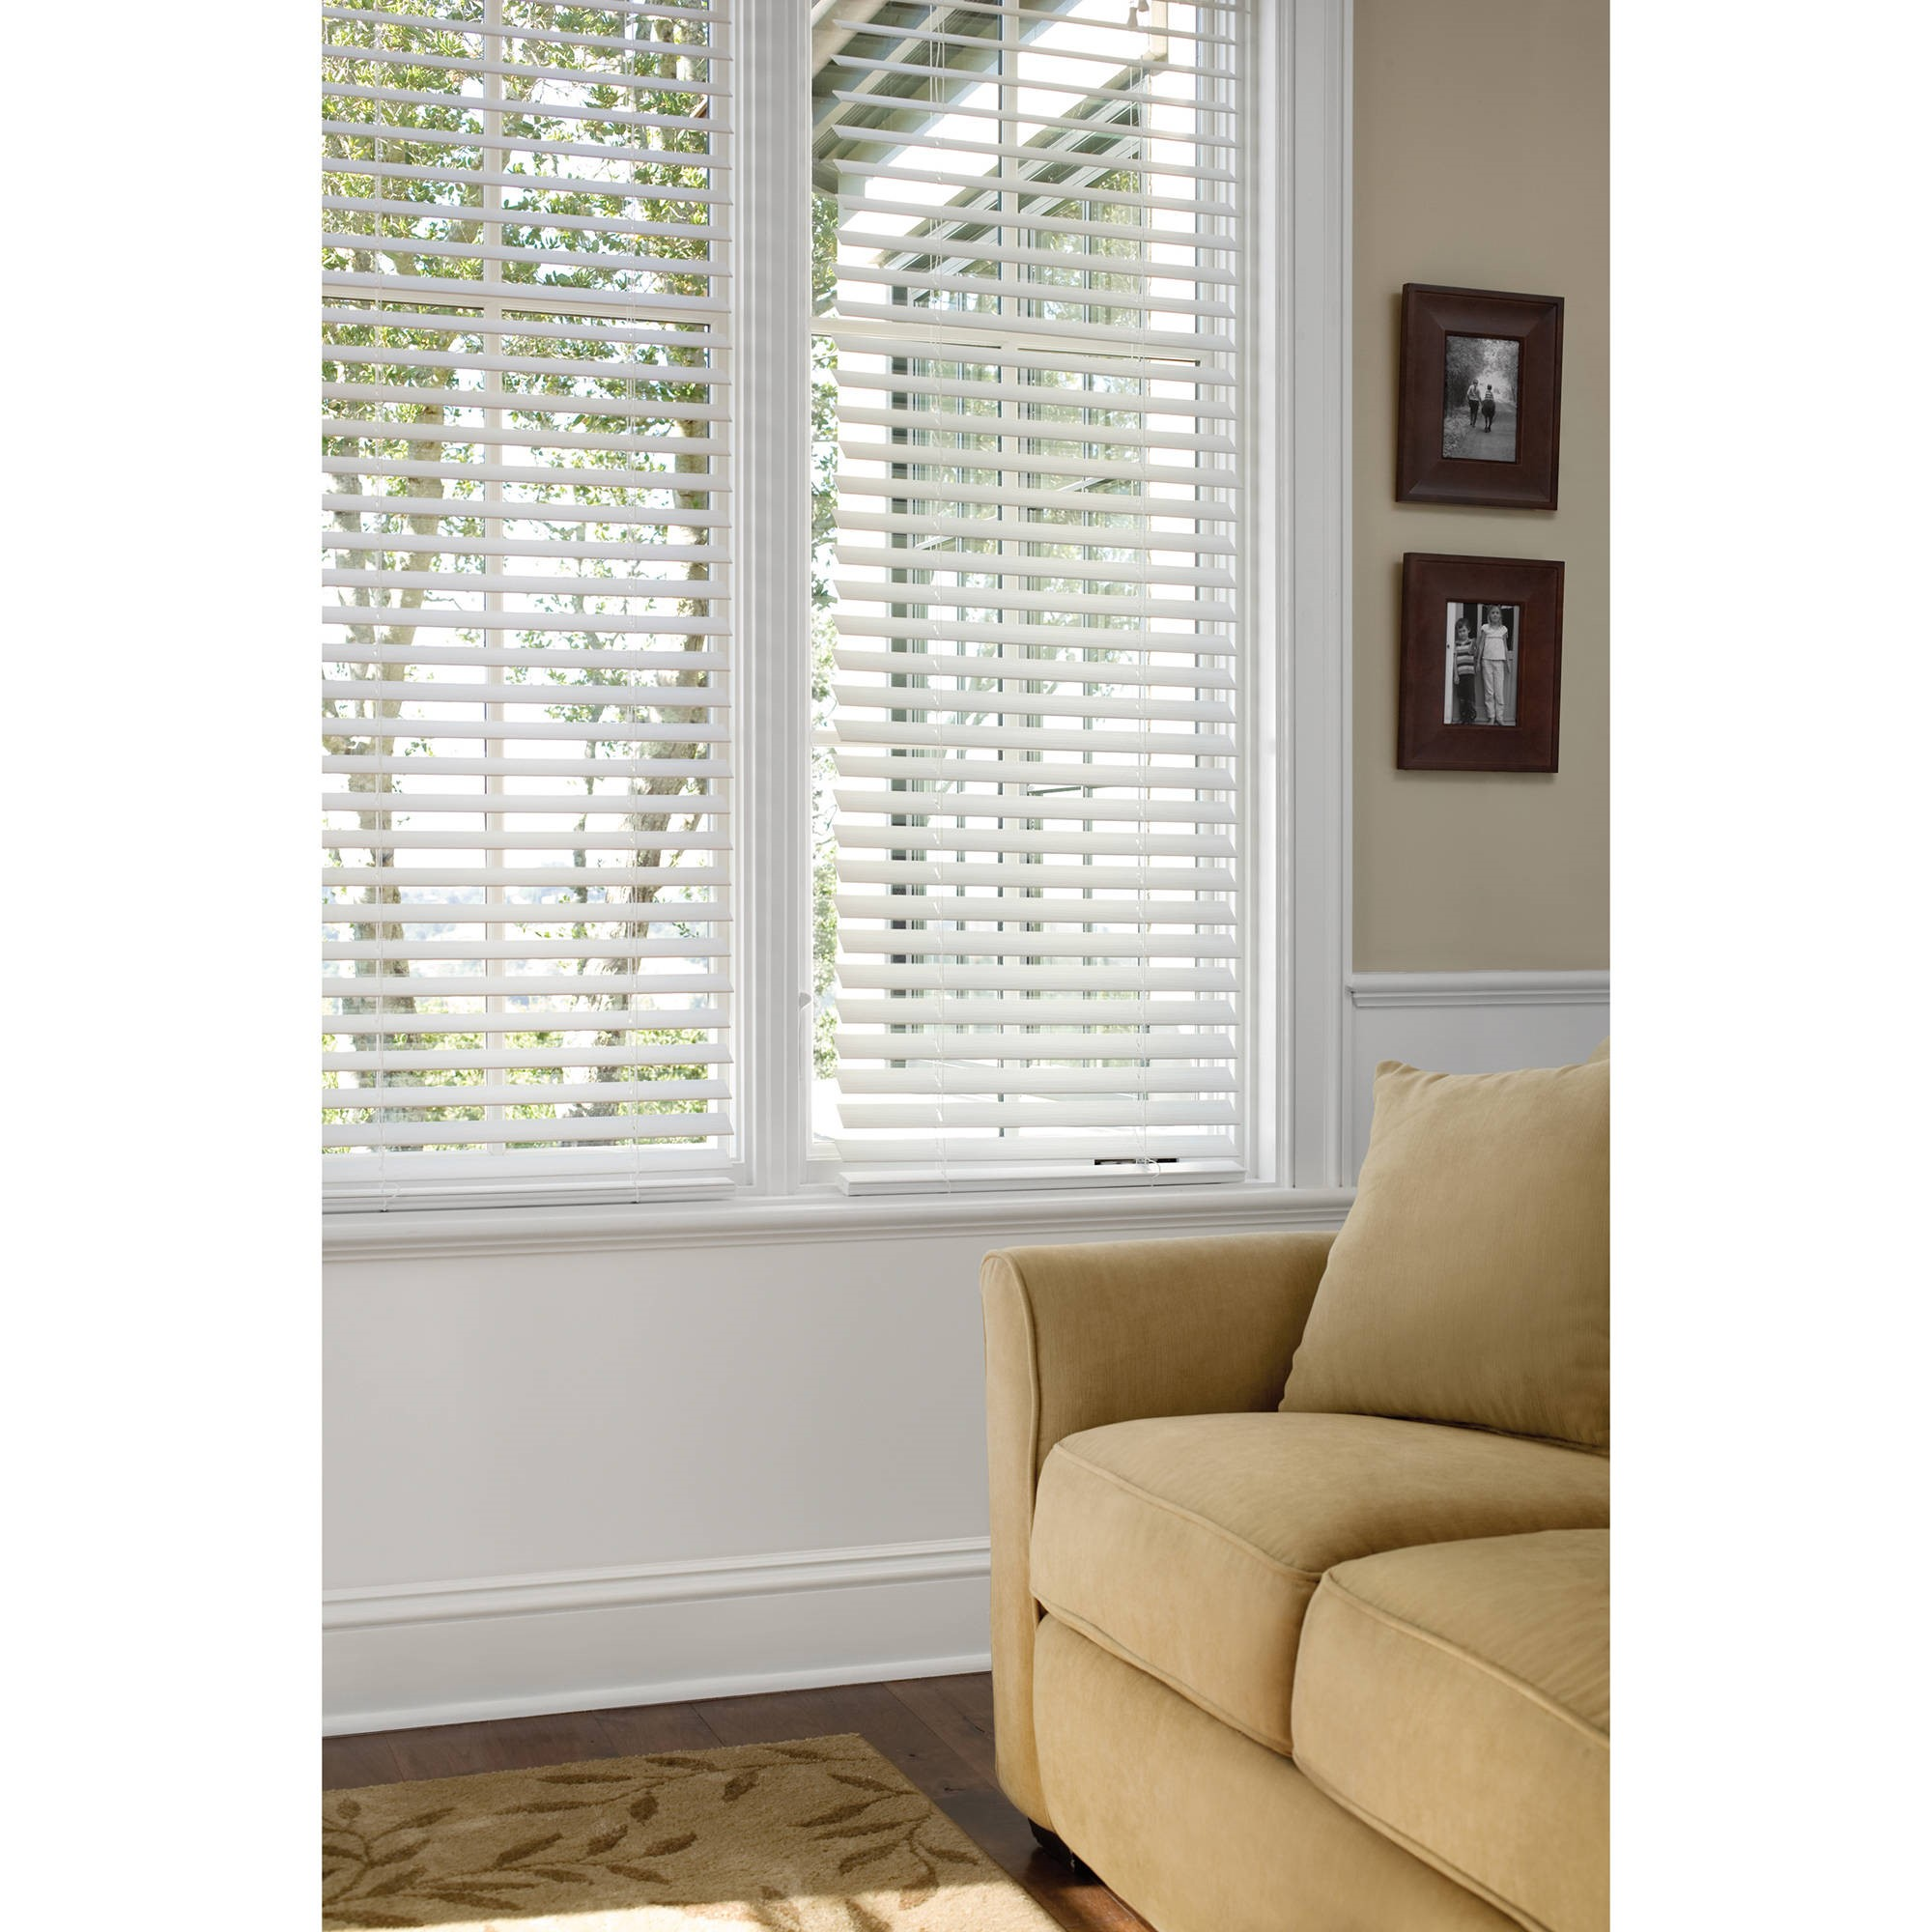 fantastic brisbane shutters out lined want nice blind and basswood curtain villa fabric next more ideas door shades birmingham barn day roller shutter find plantation pics about brea internal blinds the